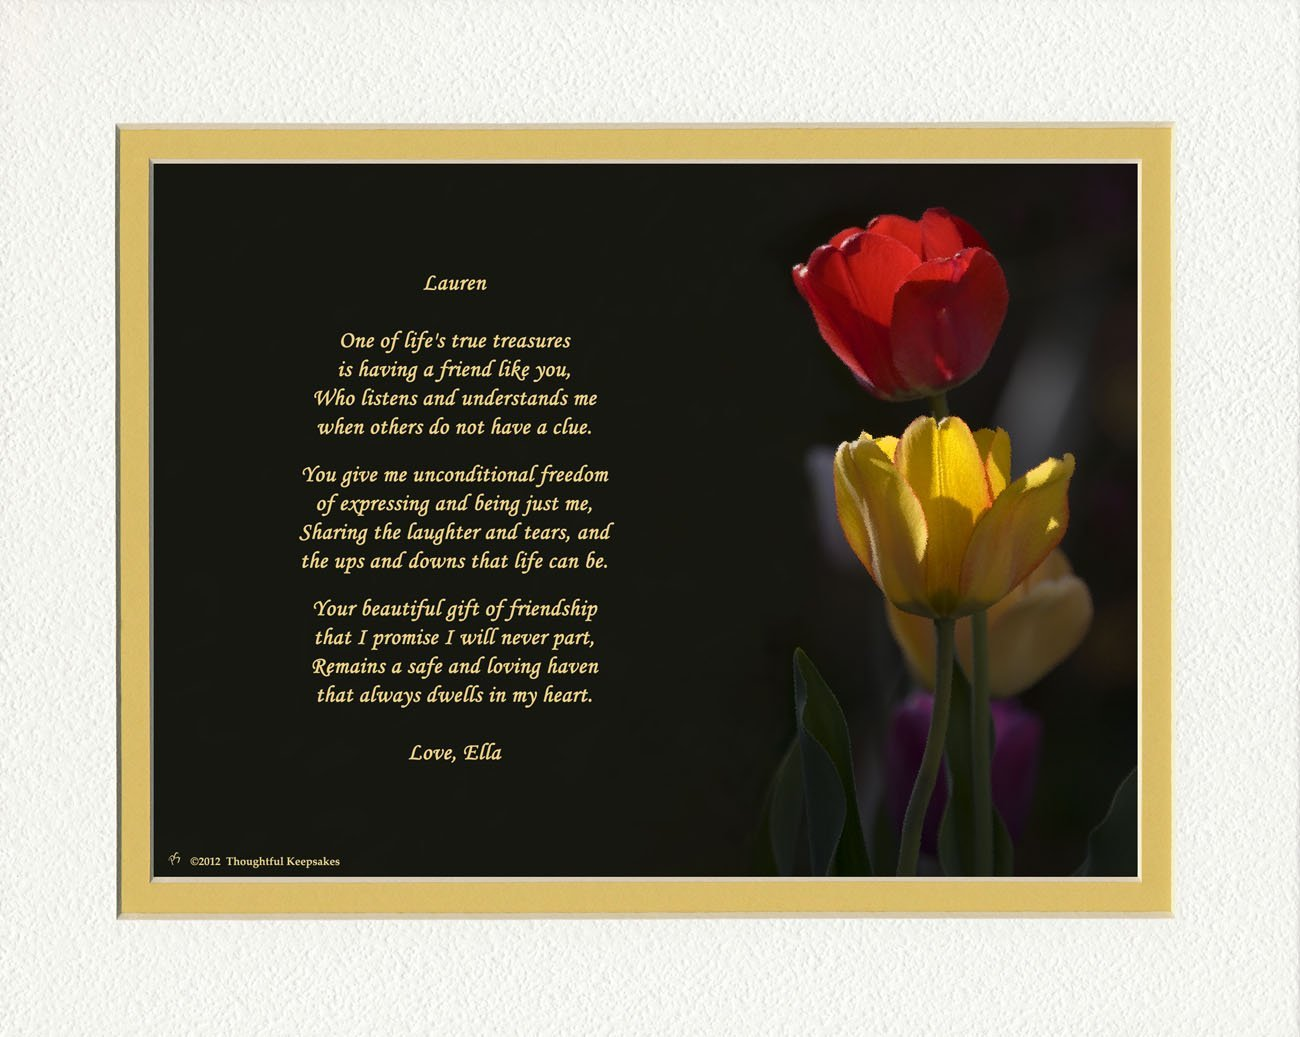 Get Quotations Personalized Friend Gift Tulips Photo With This Beautiful Friendship Poem 8x10 Double Matted